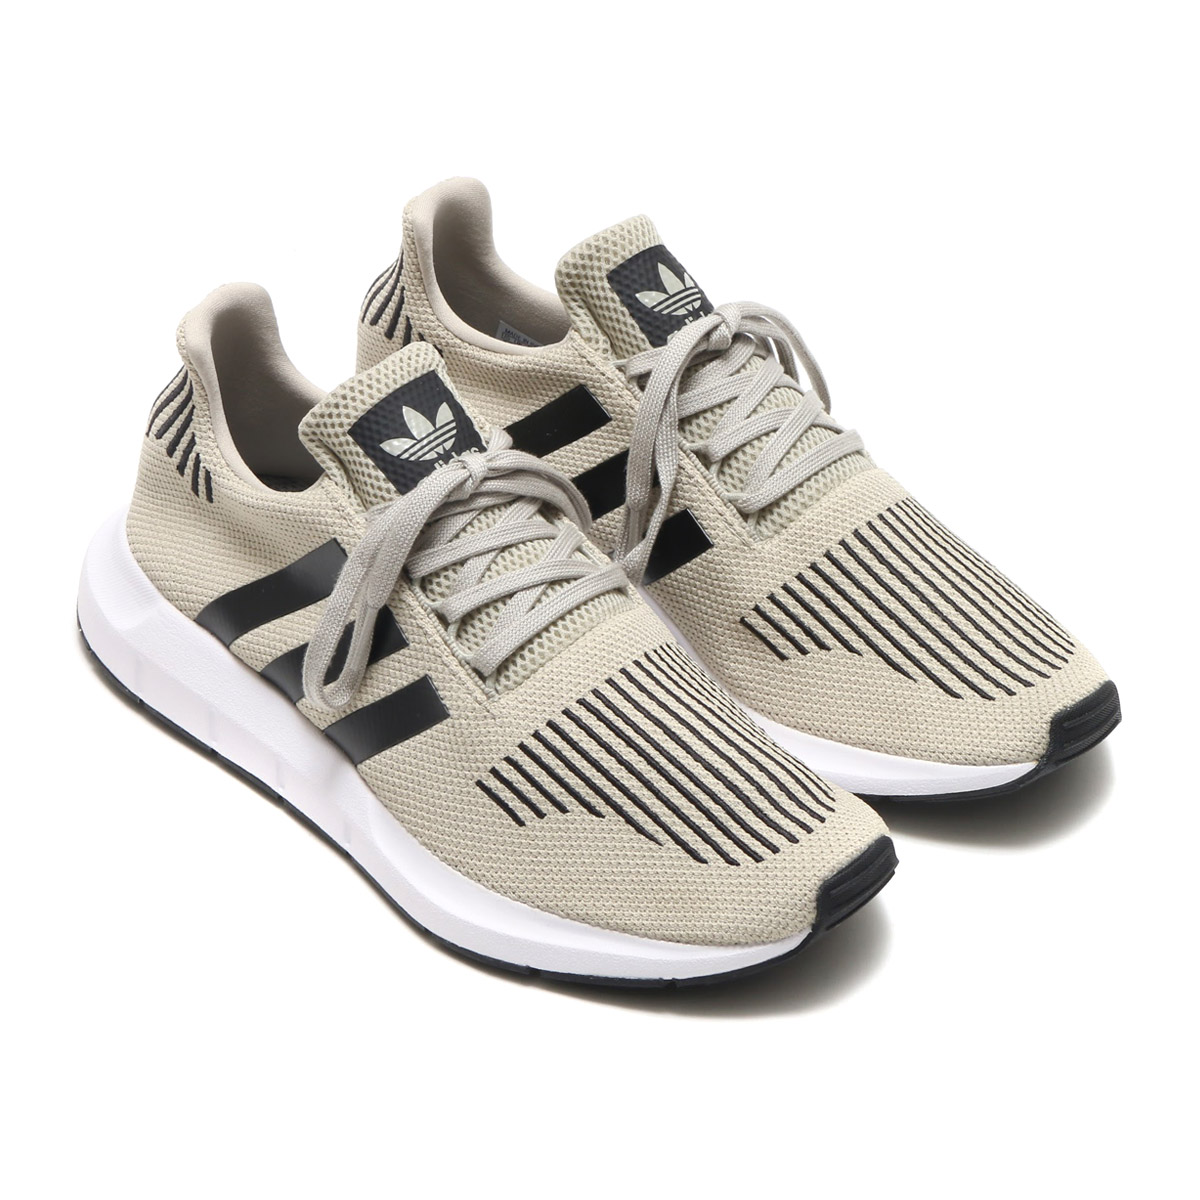 96152836f Sporty daily shoes